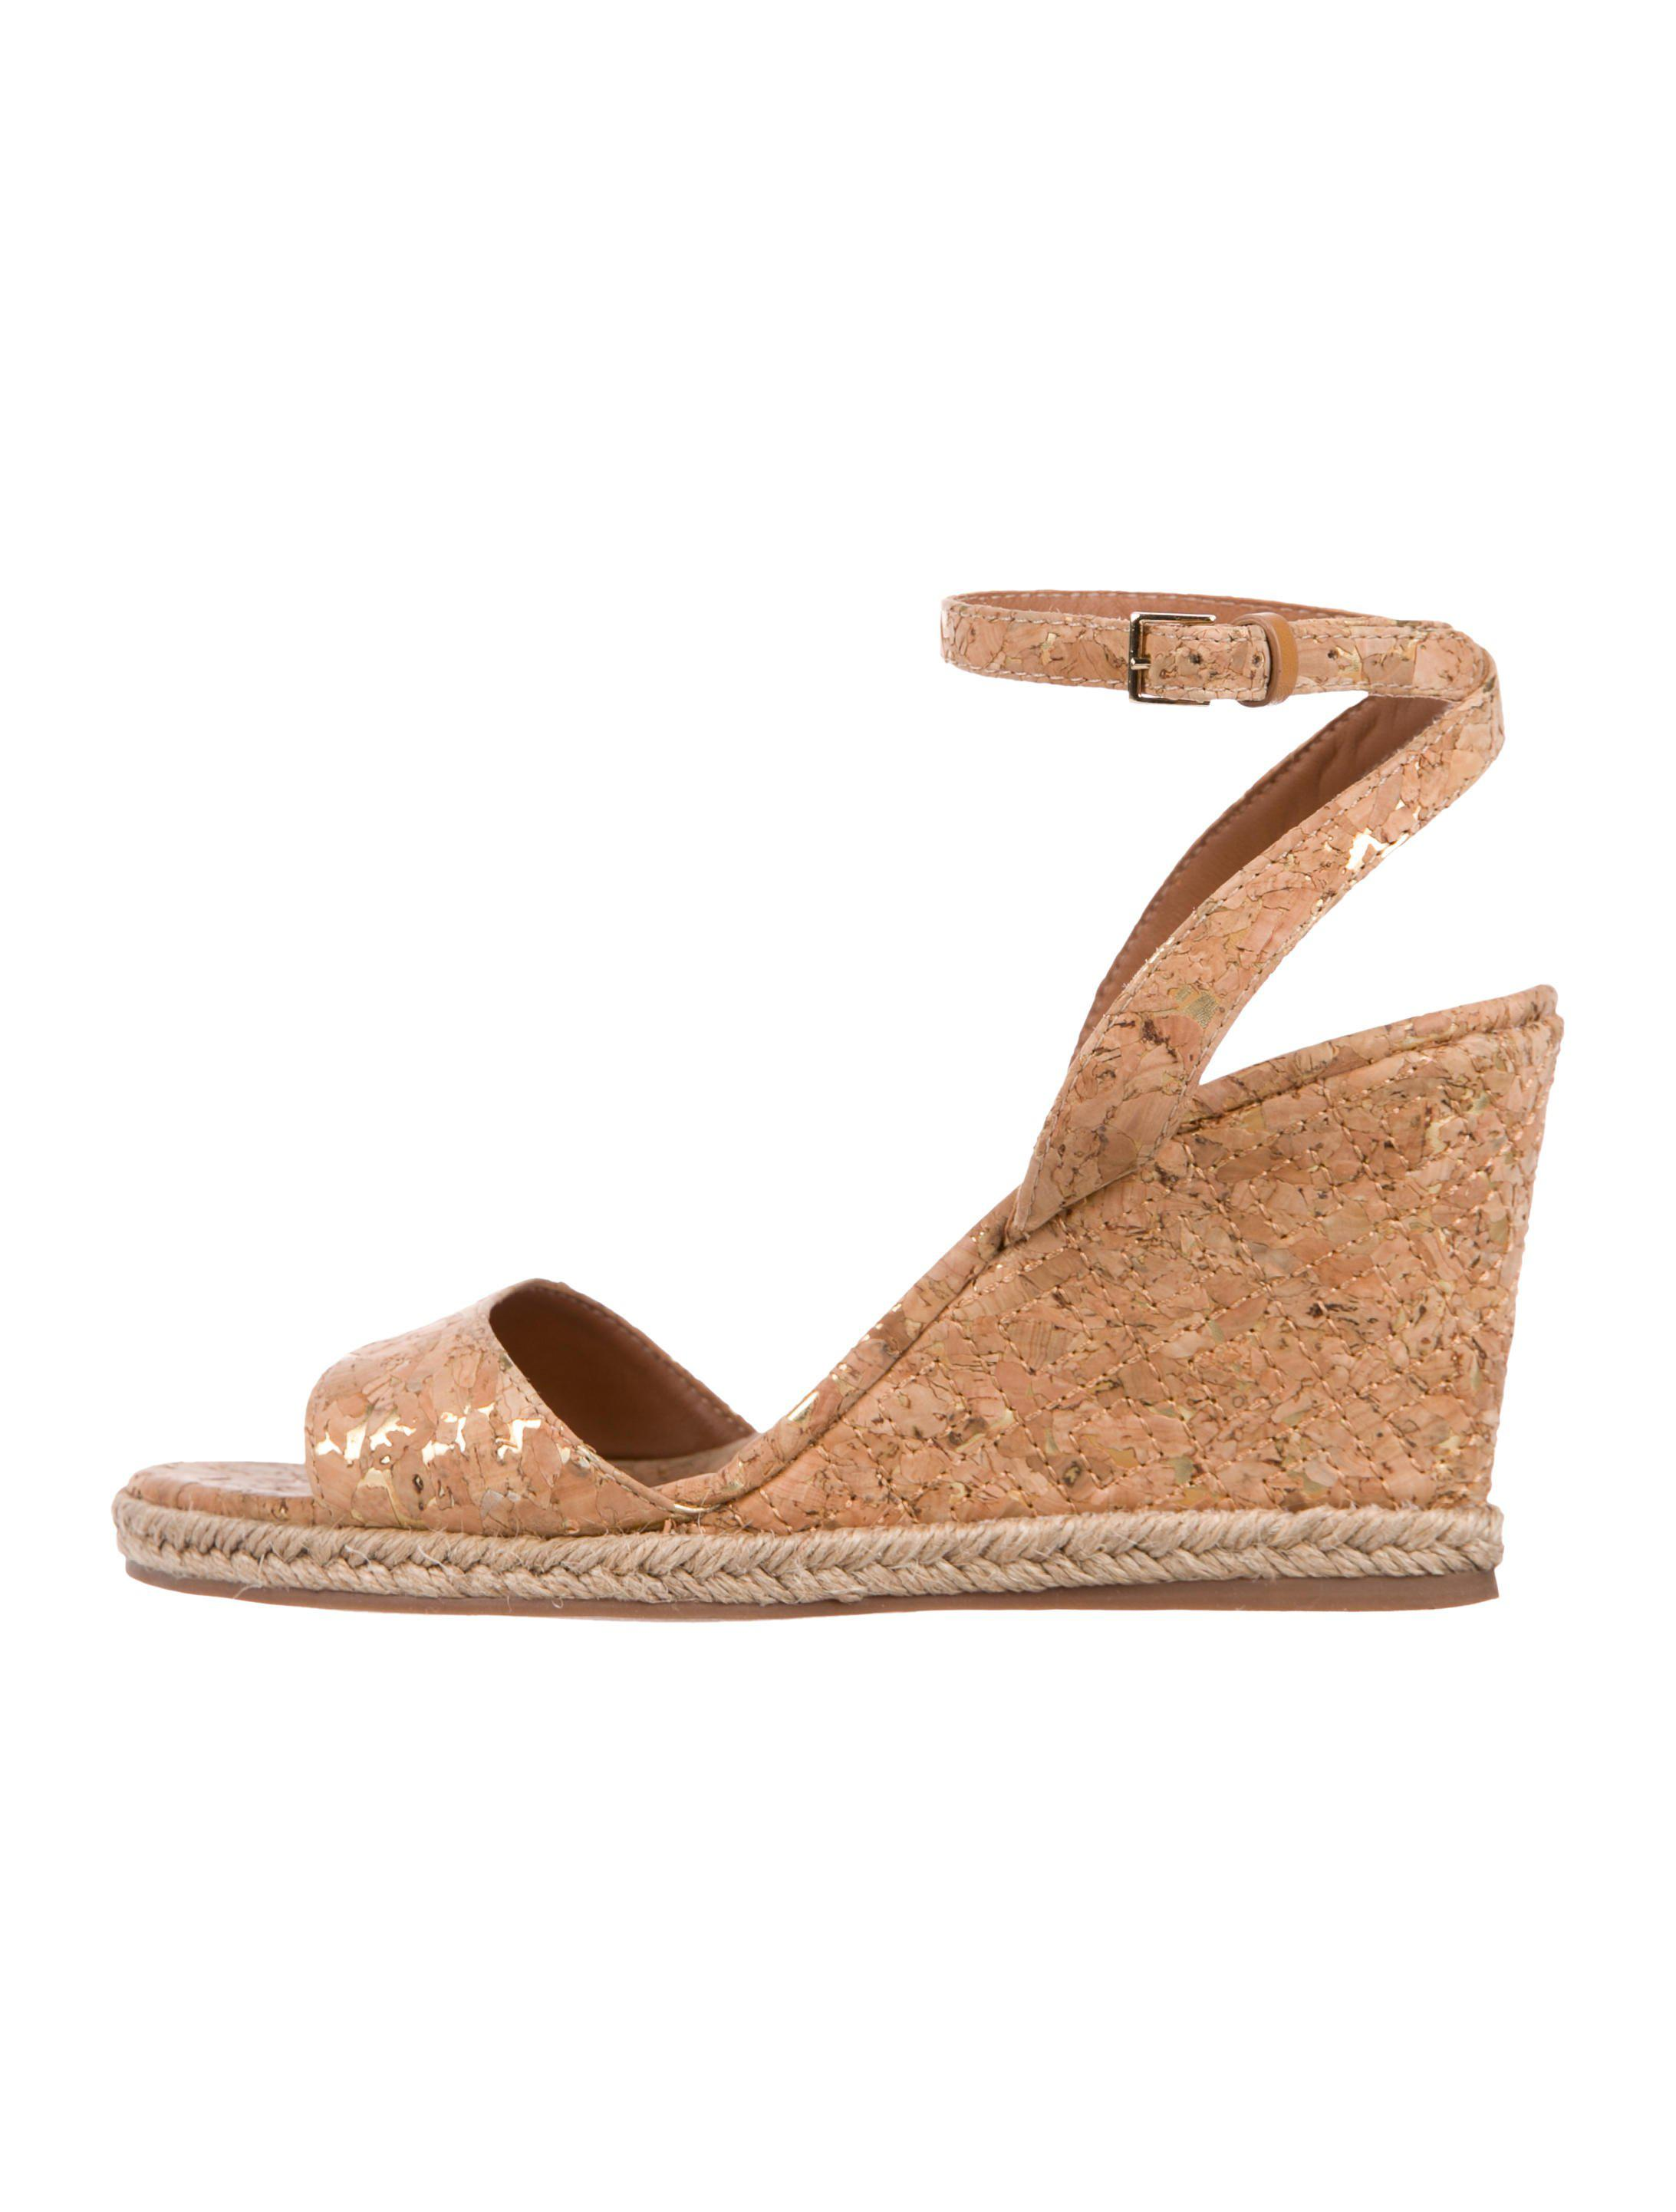 45a78bb3f945 Lyst - Tory Burch Cork Marion Sandals in Natural